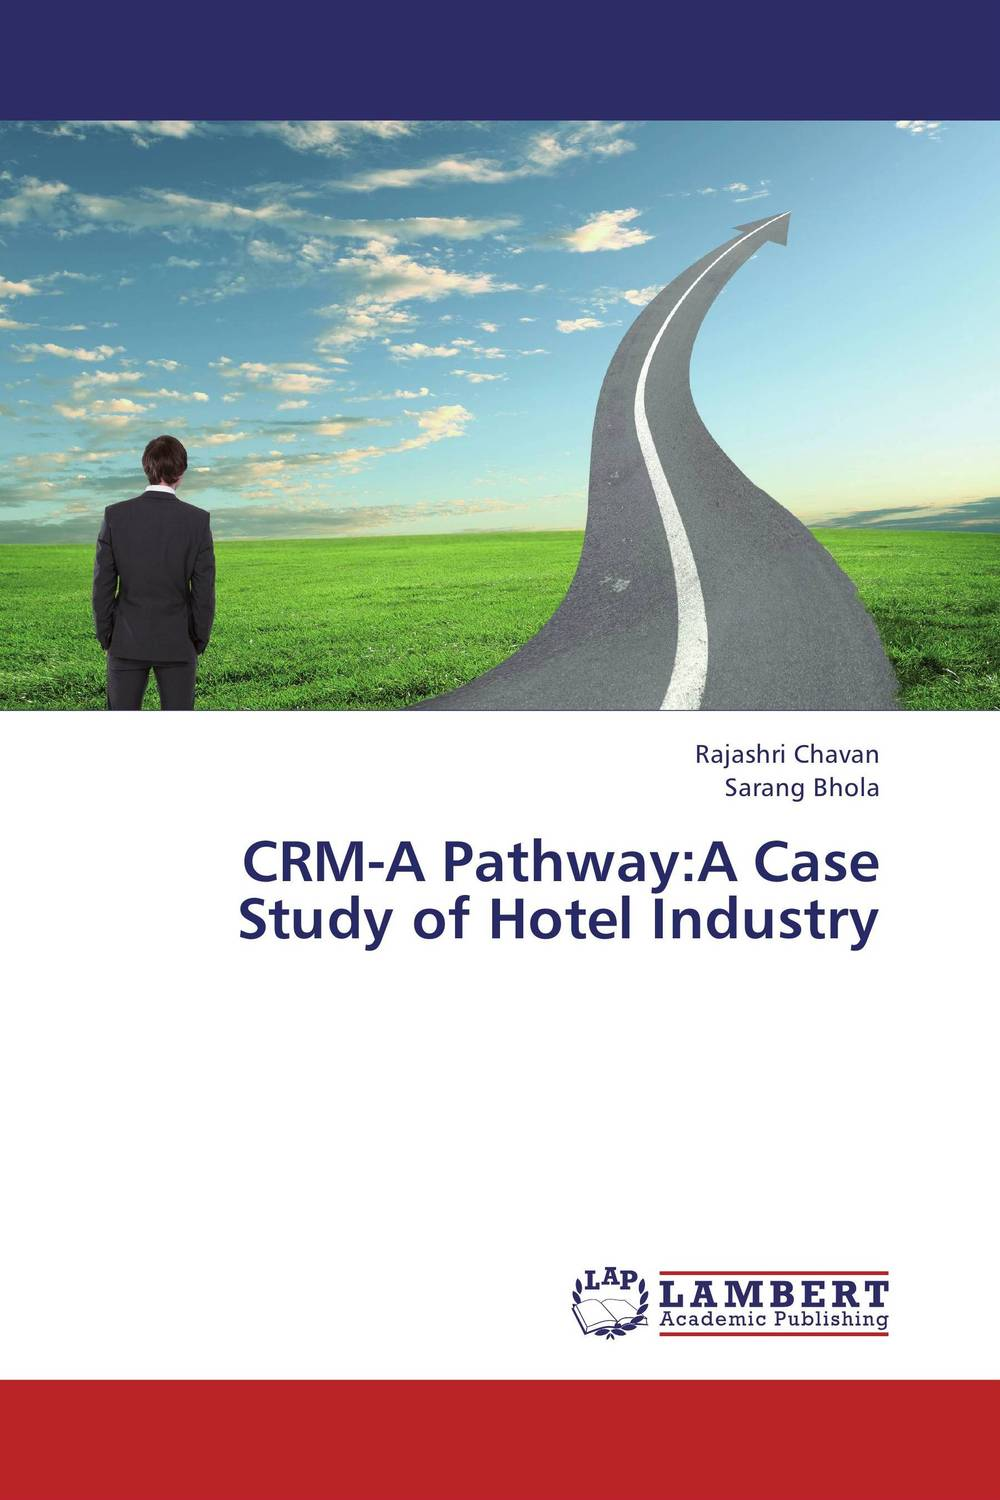 CRM-A Pathway:A Case Study of Hotel Industry crm emerging practices in agrochemical industry